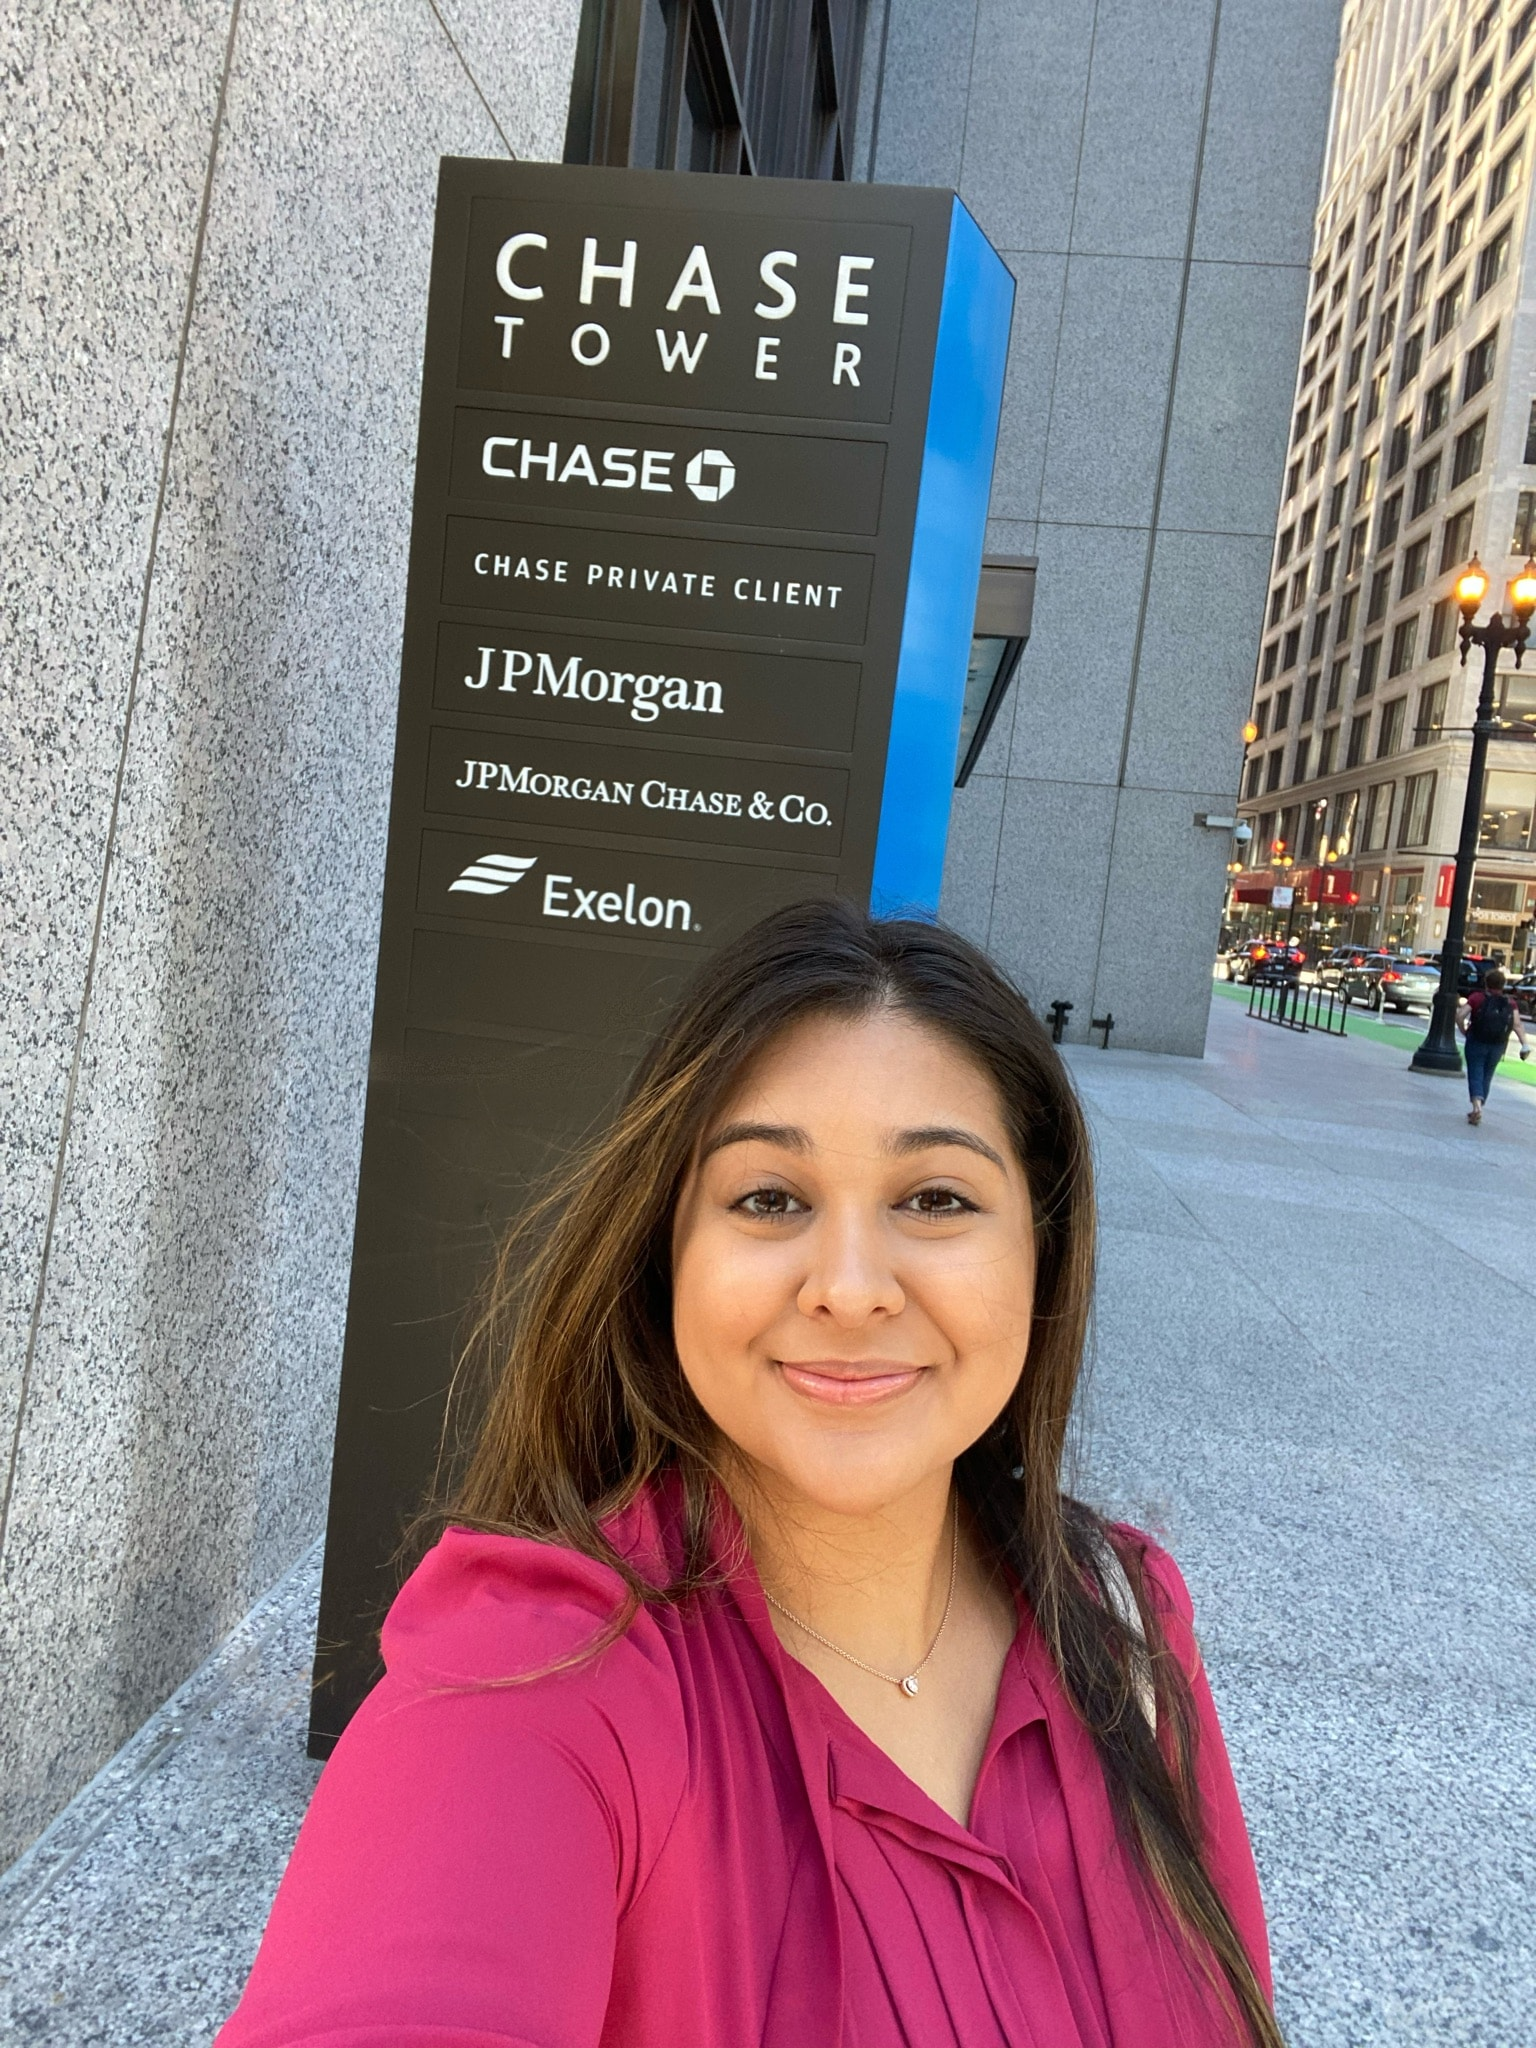 Ysa Moran-Adames takes a selfie in front of the Chase Tower building sign in Chicago.